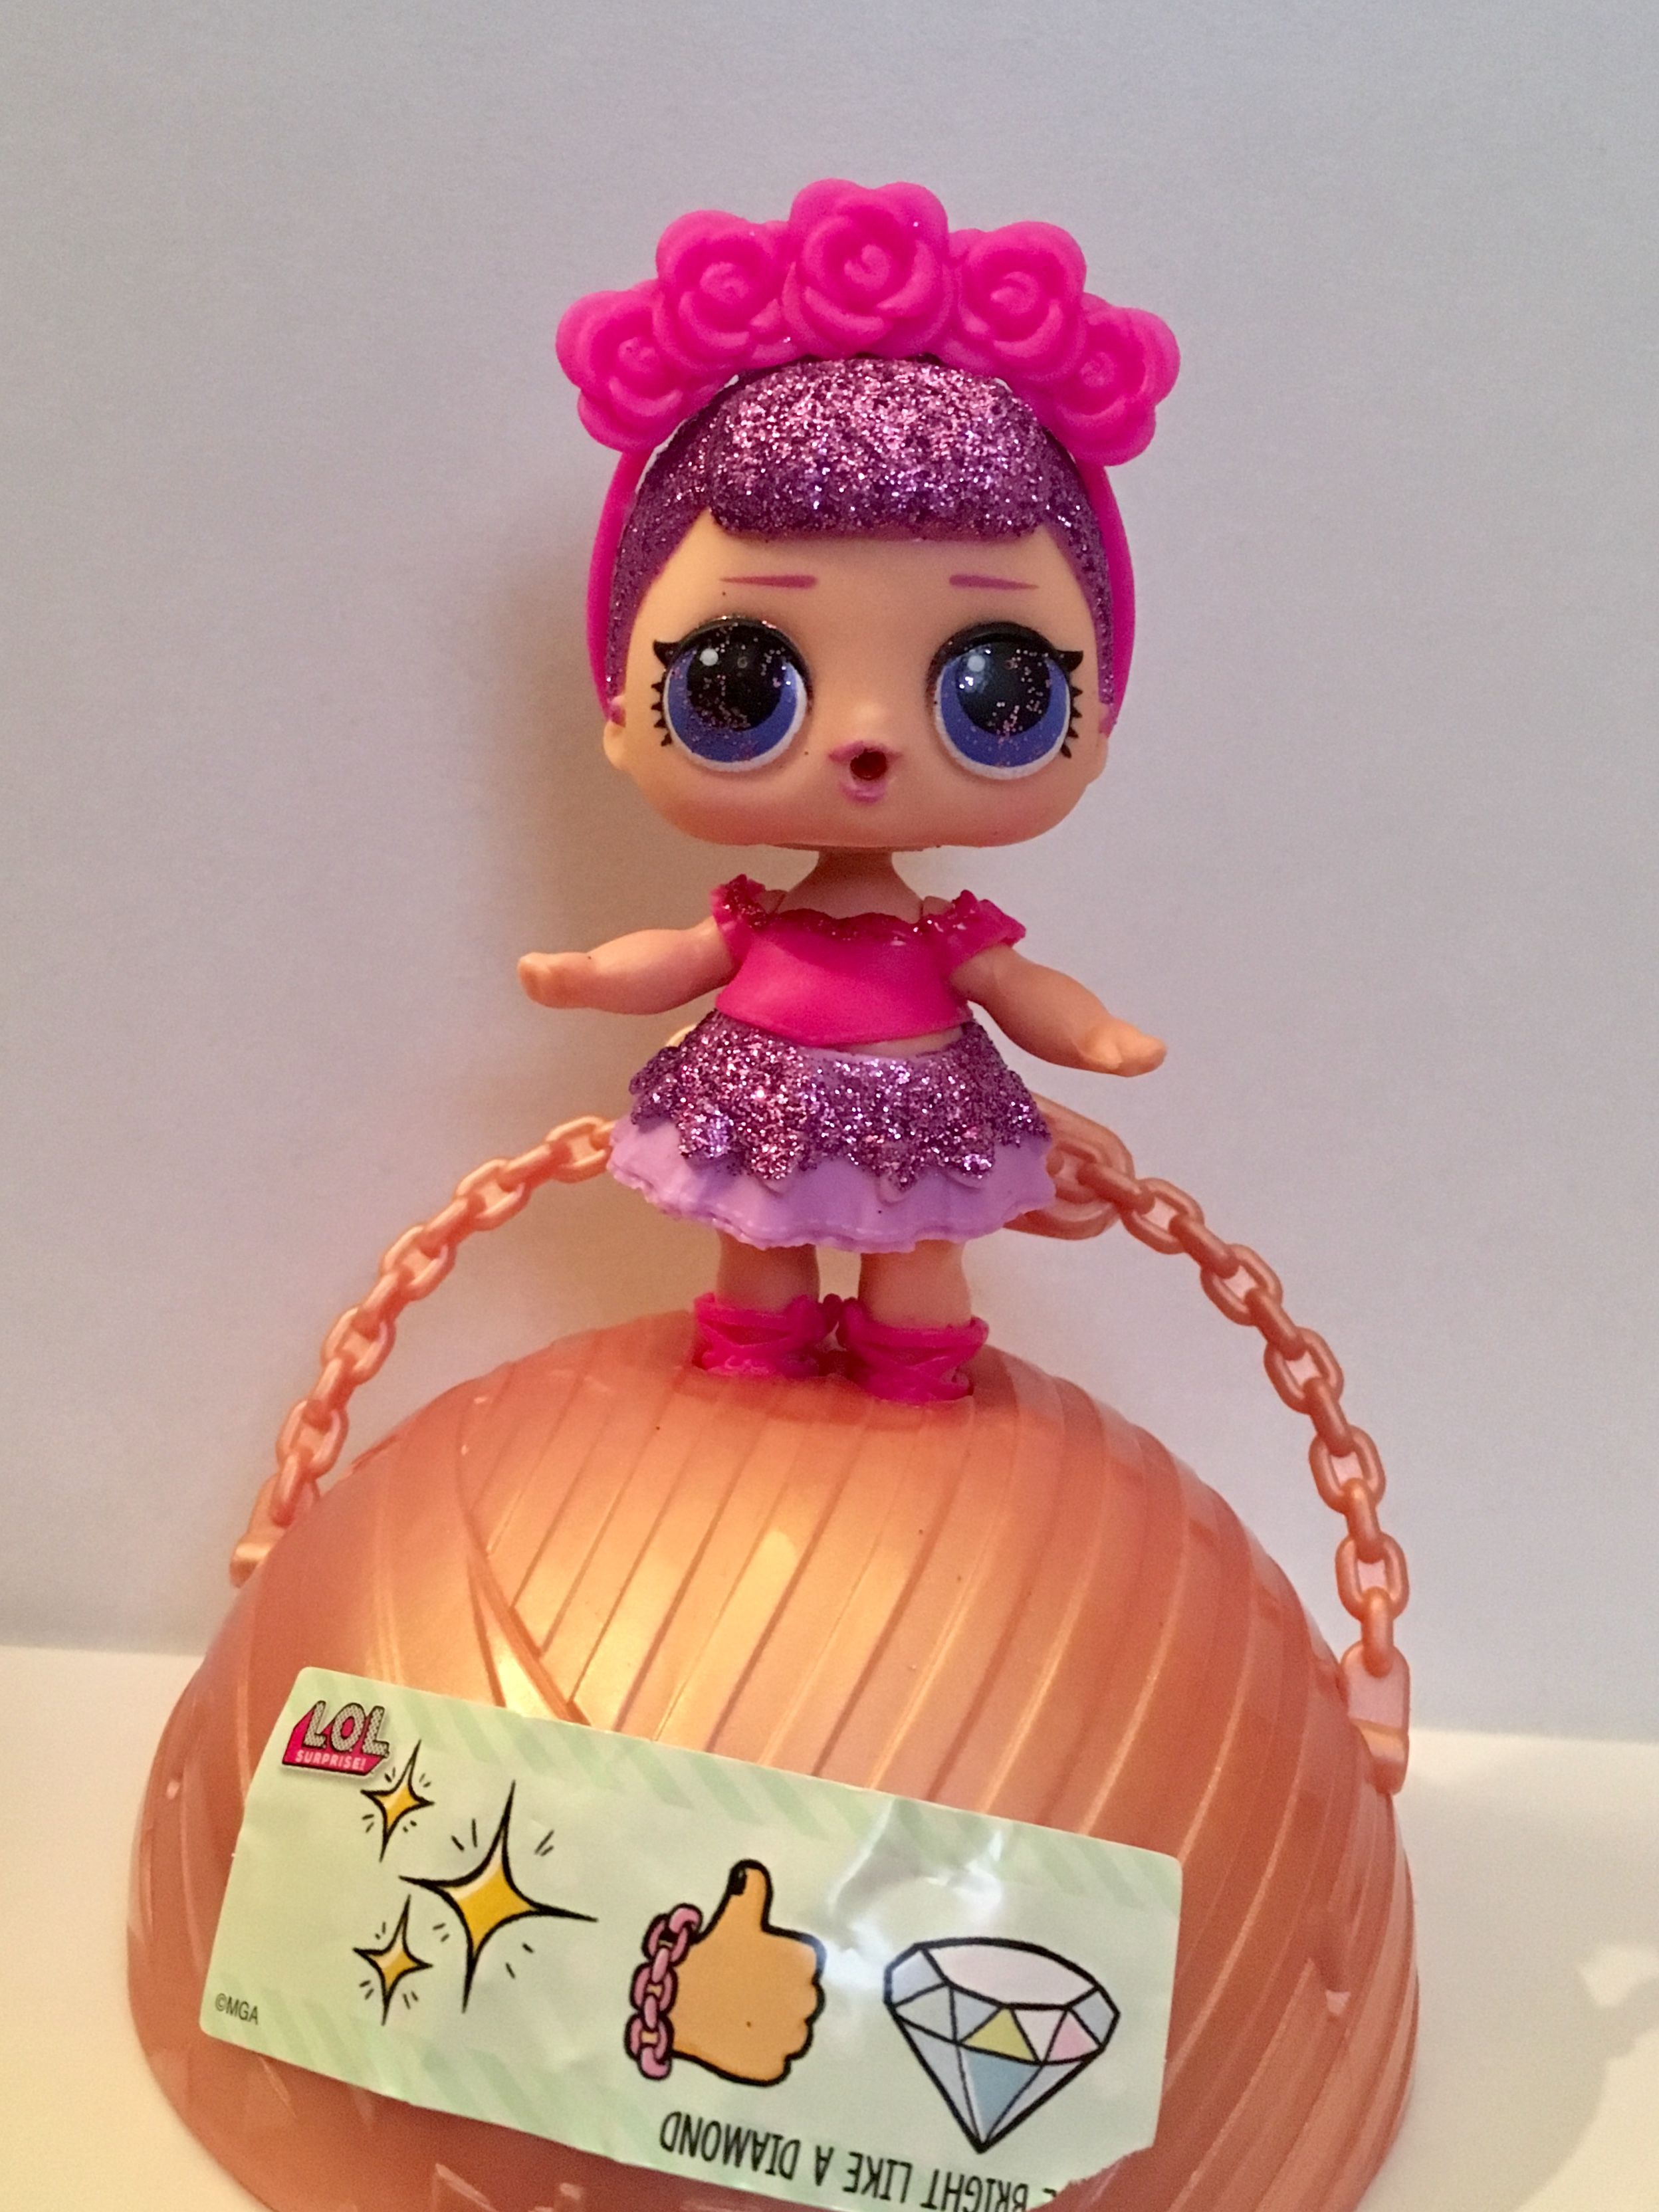 Sugar Queen Finally Lol Dolls You Desperately Need For The